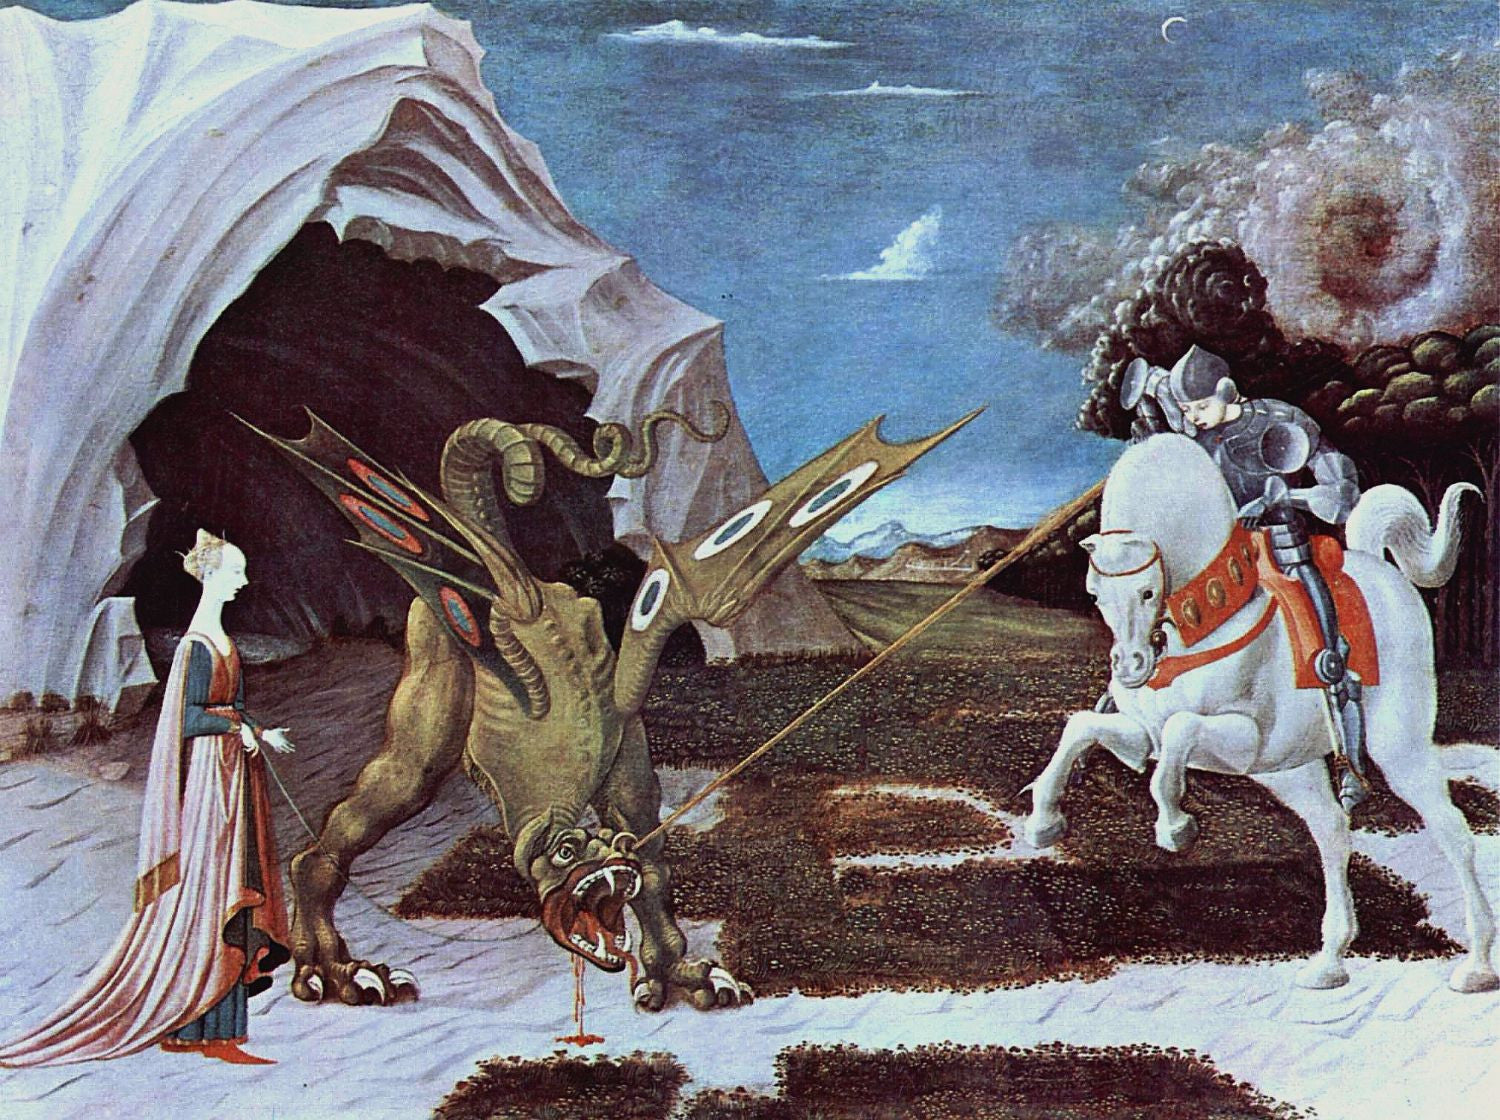 Paolo Uccello | Buy Posters, Frames, Canvas, Digital Art & Large Size Prints Of The Famous Old Master's Artworks